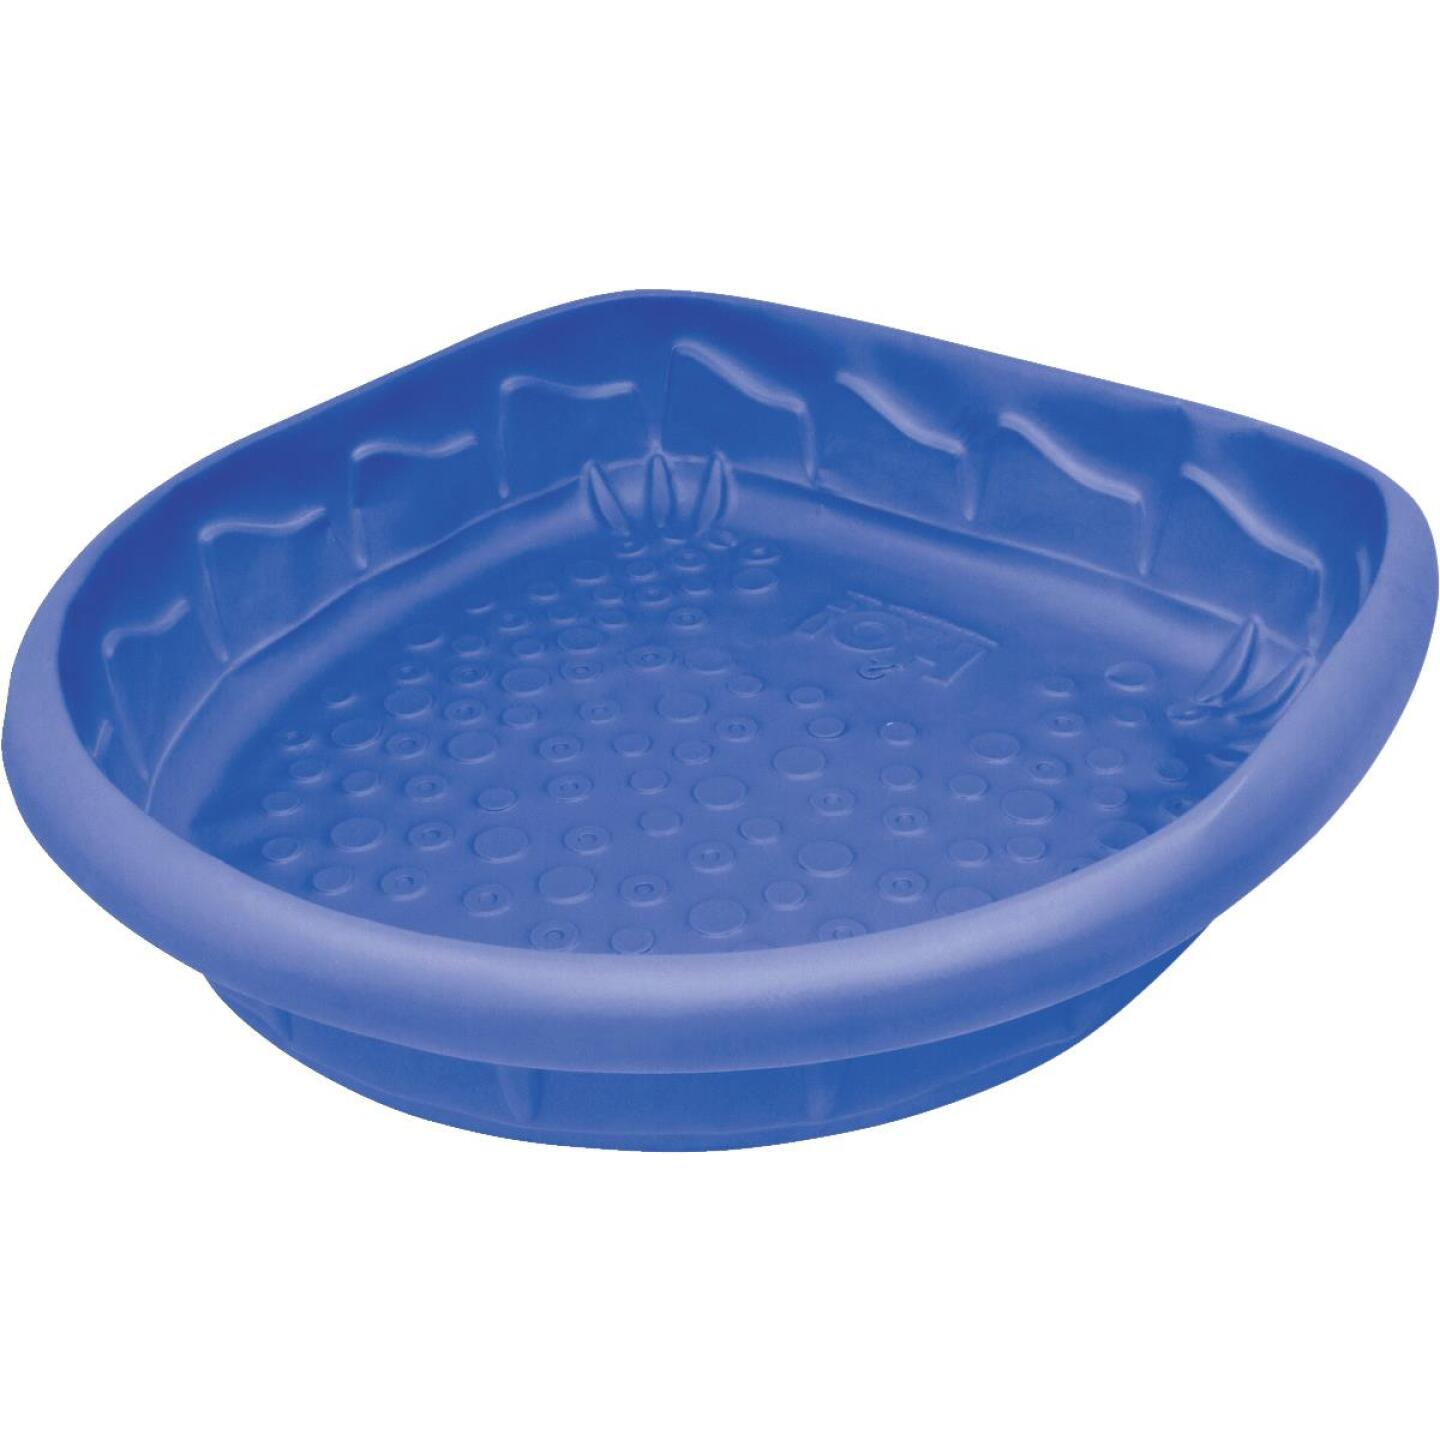 H2O 41 In. L. x 9 In. D. Blue Polyethylene D-Shaped Pool Image 1